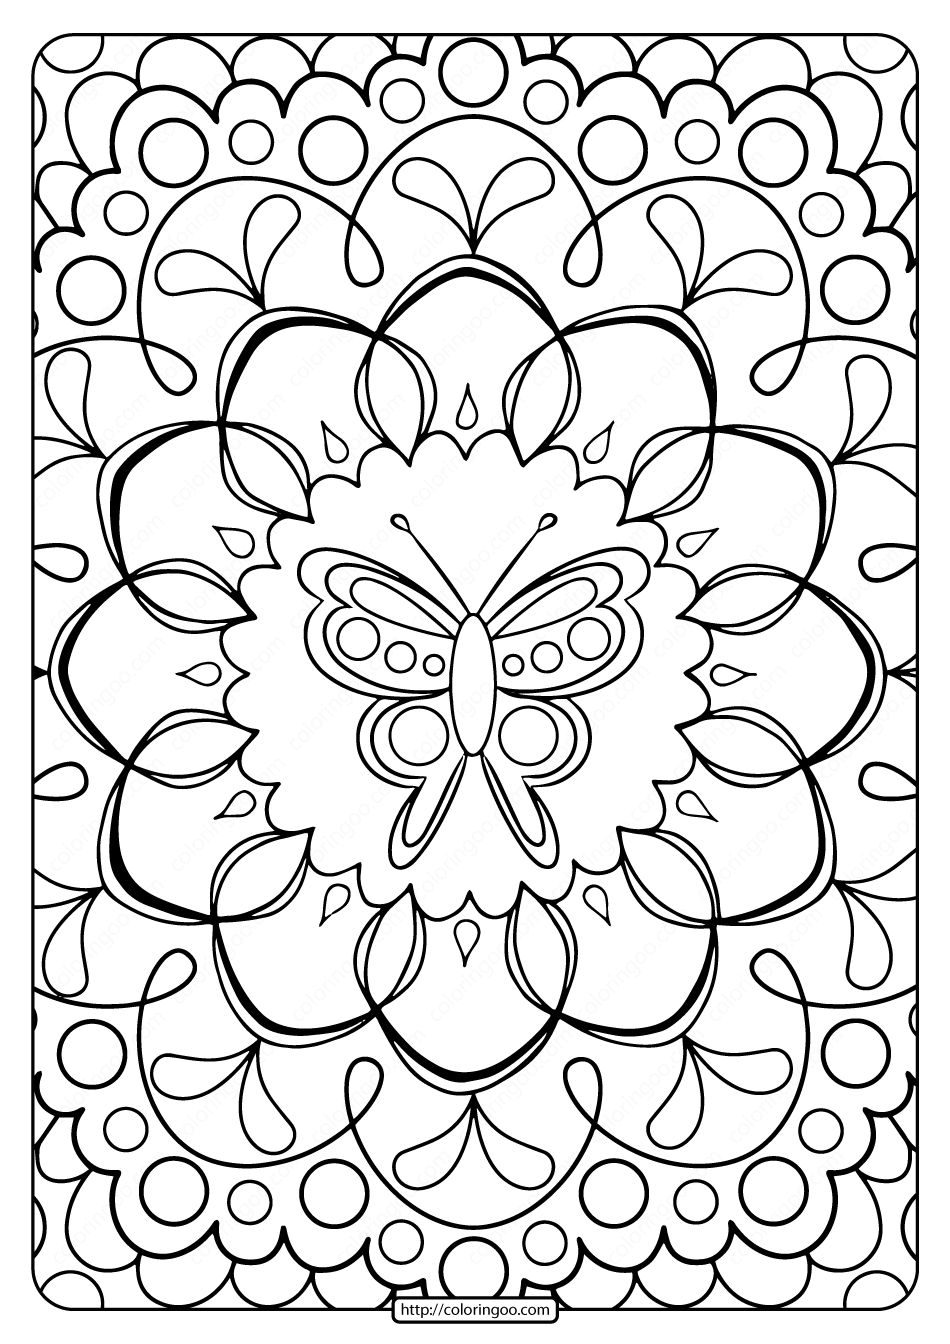 free online colouring page  »  8 Photo » Creative..!